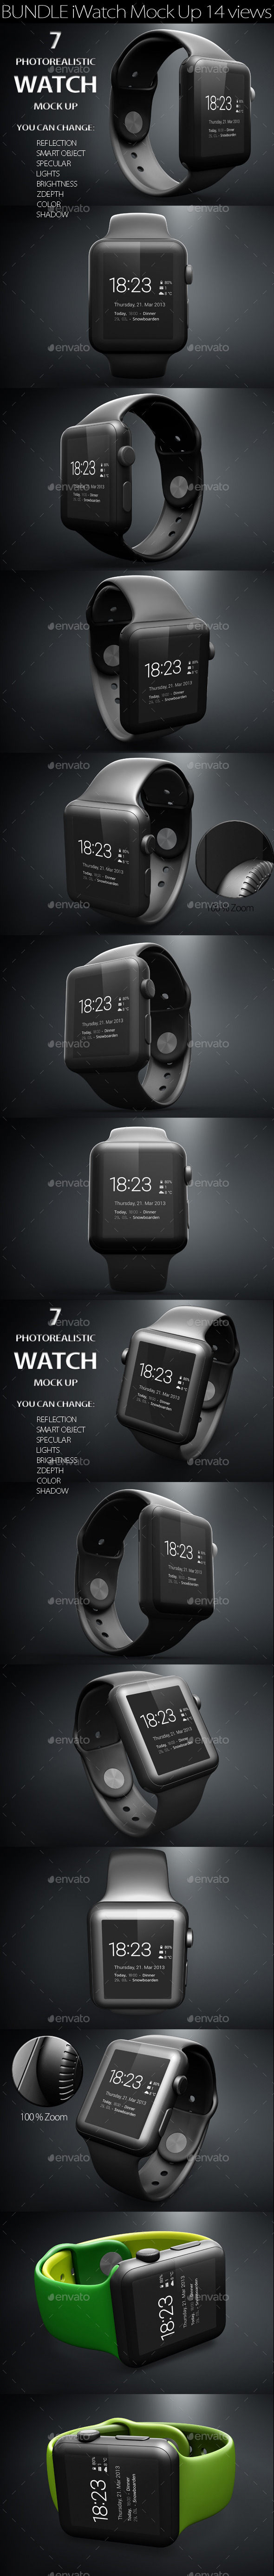 GraphicRiver Bundle iWatch Mock Up 11365488